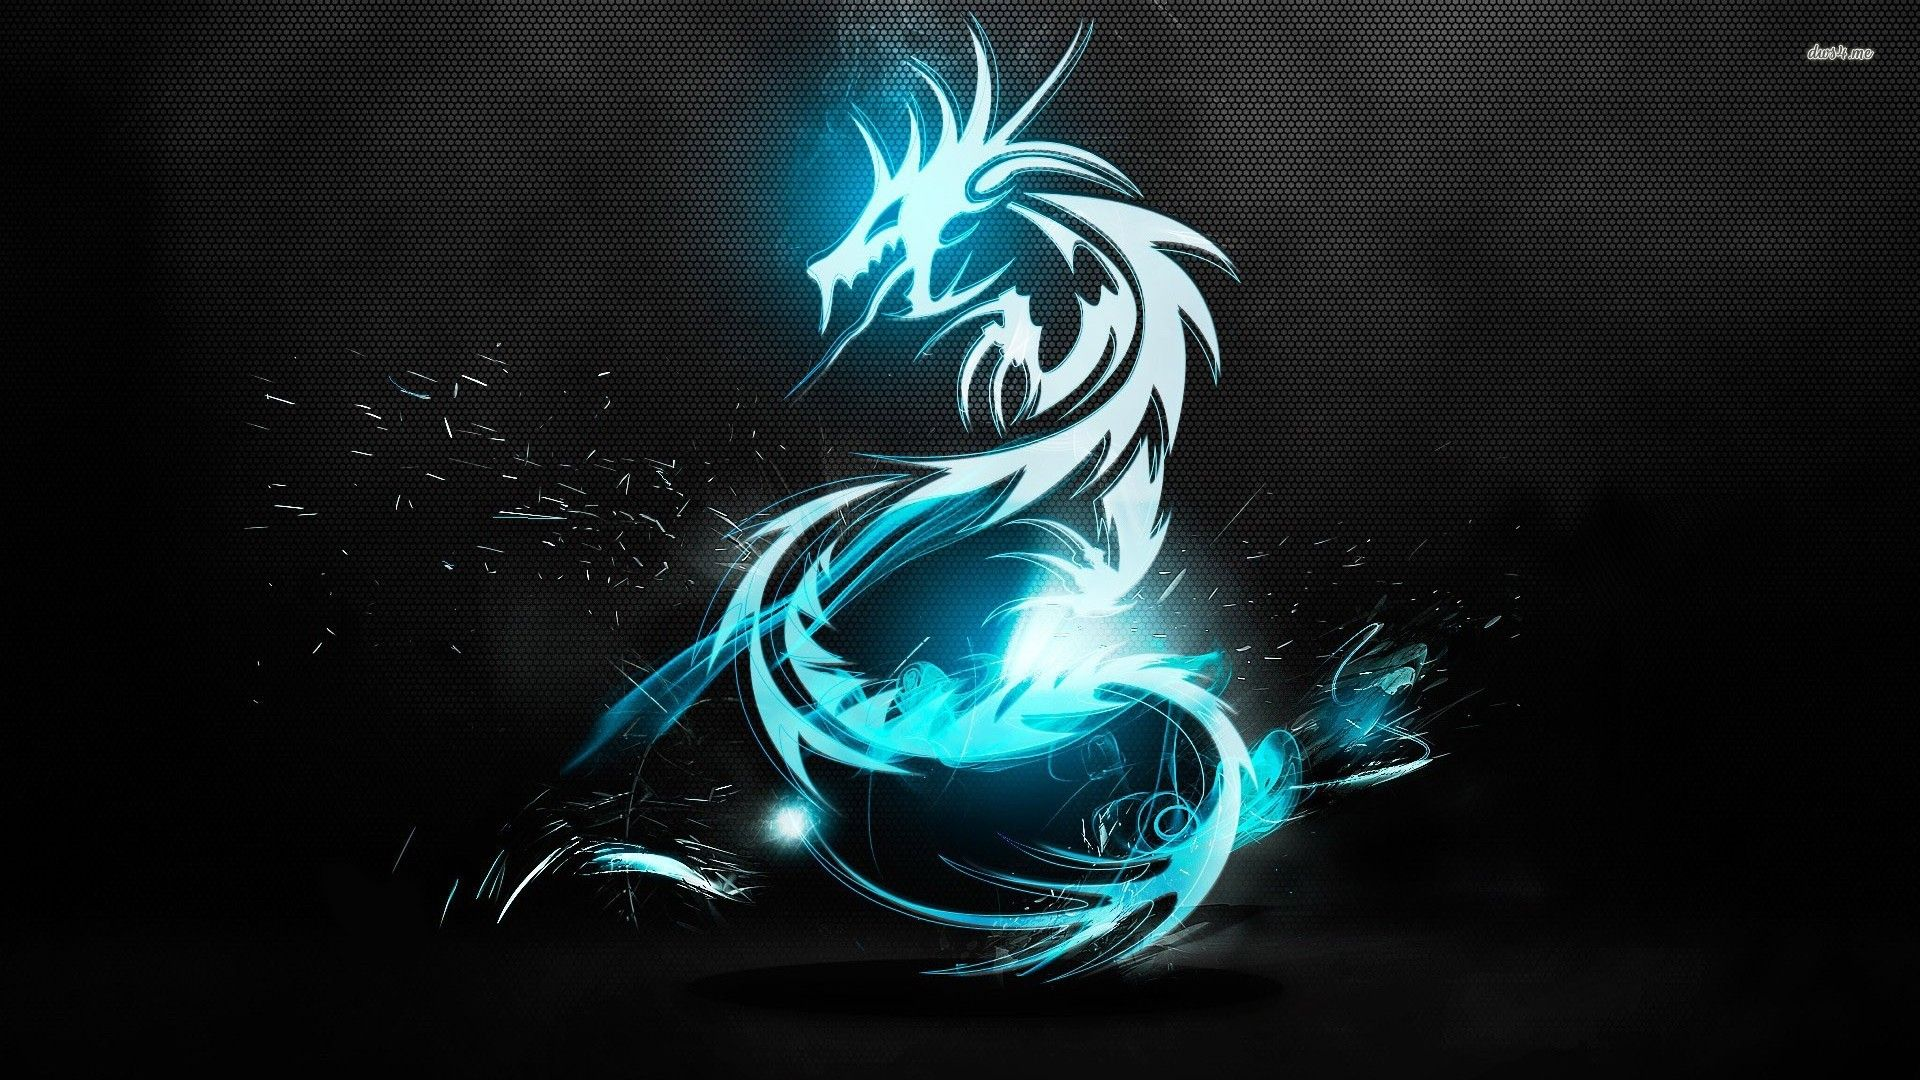 Cool Pictures Of Dragons